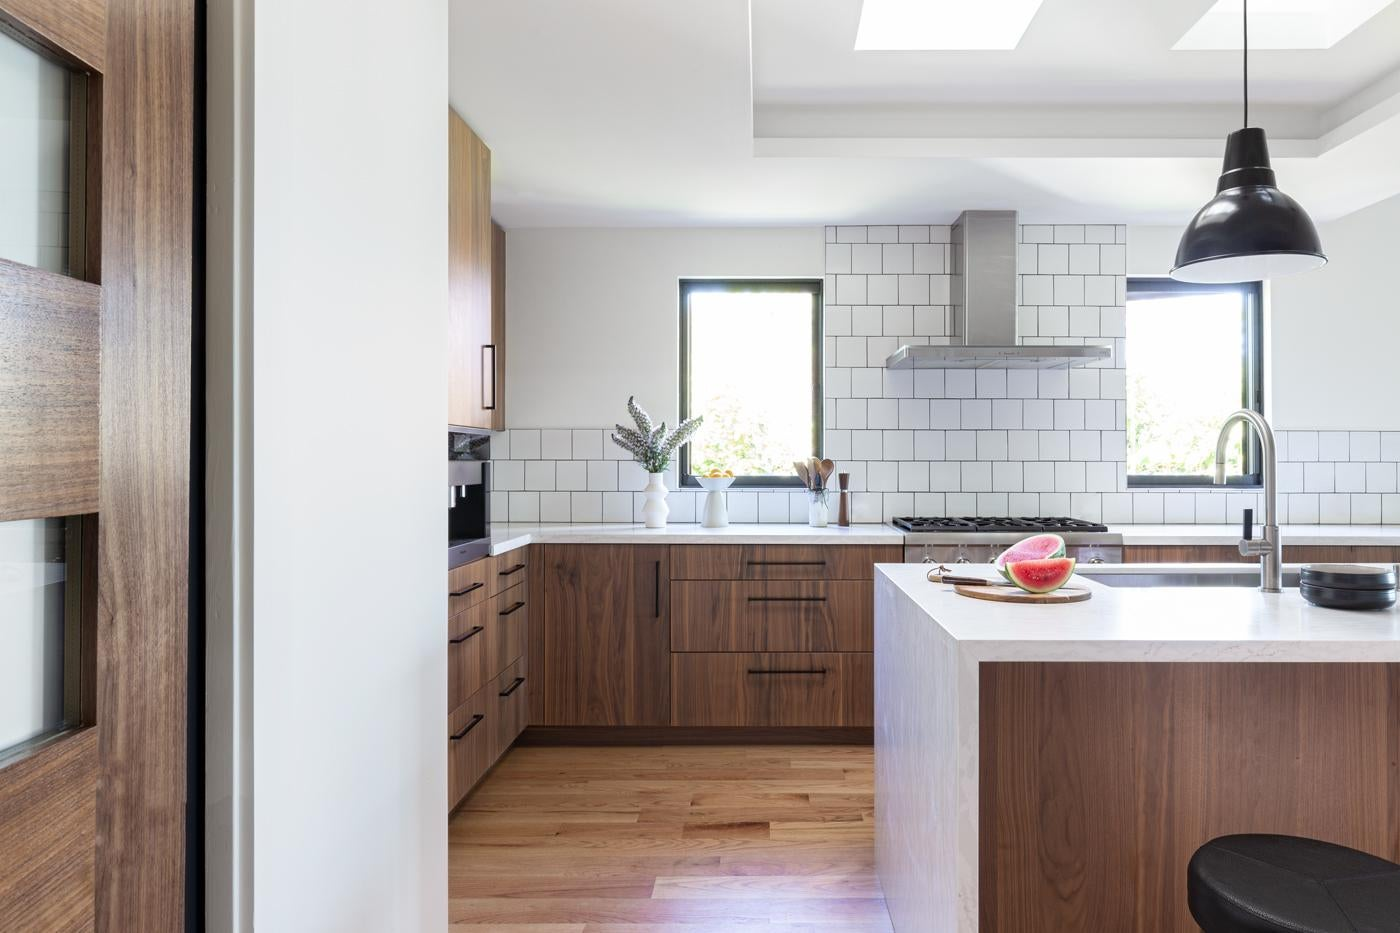 Contemporary Kitchen with Walnut Cabinetry and Quartz Countertops